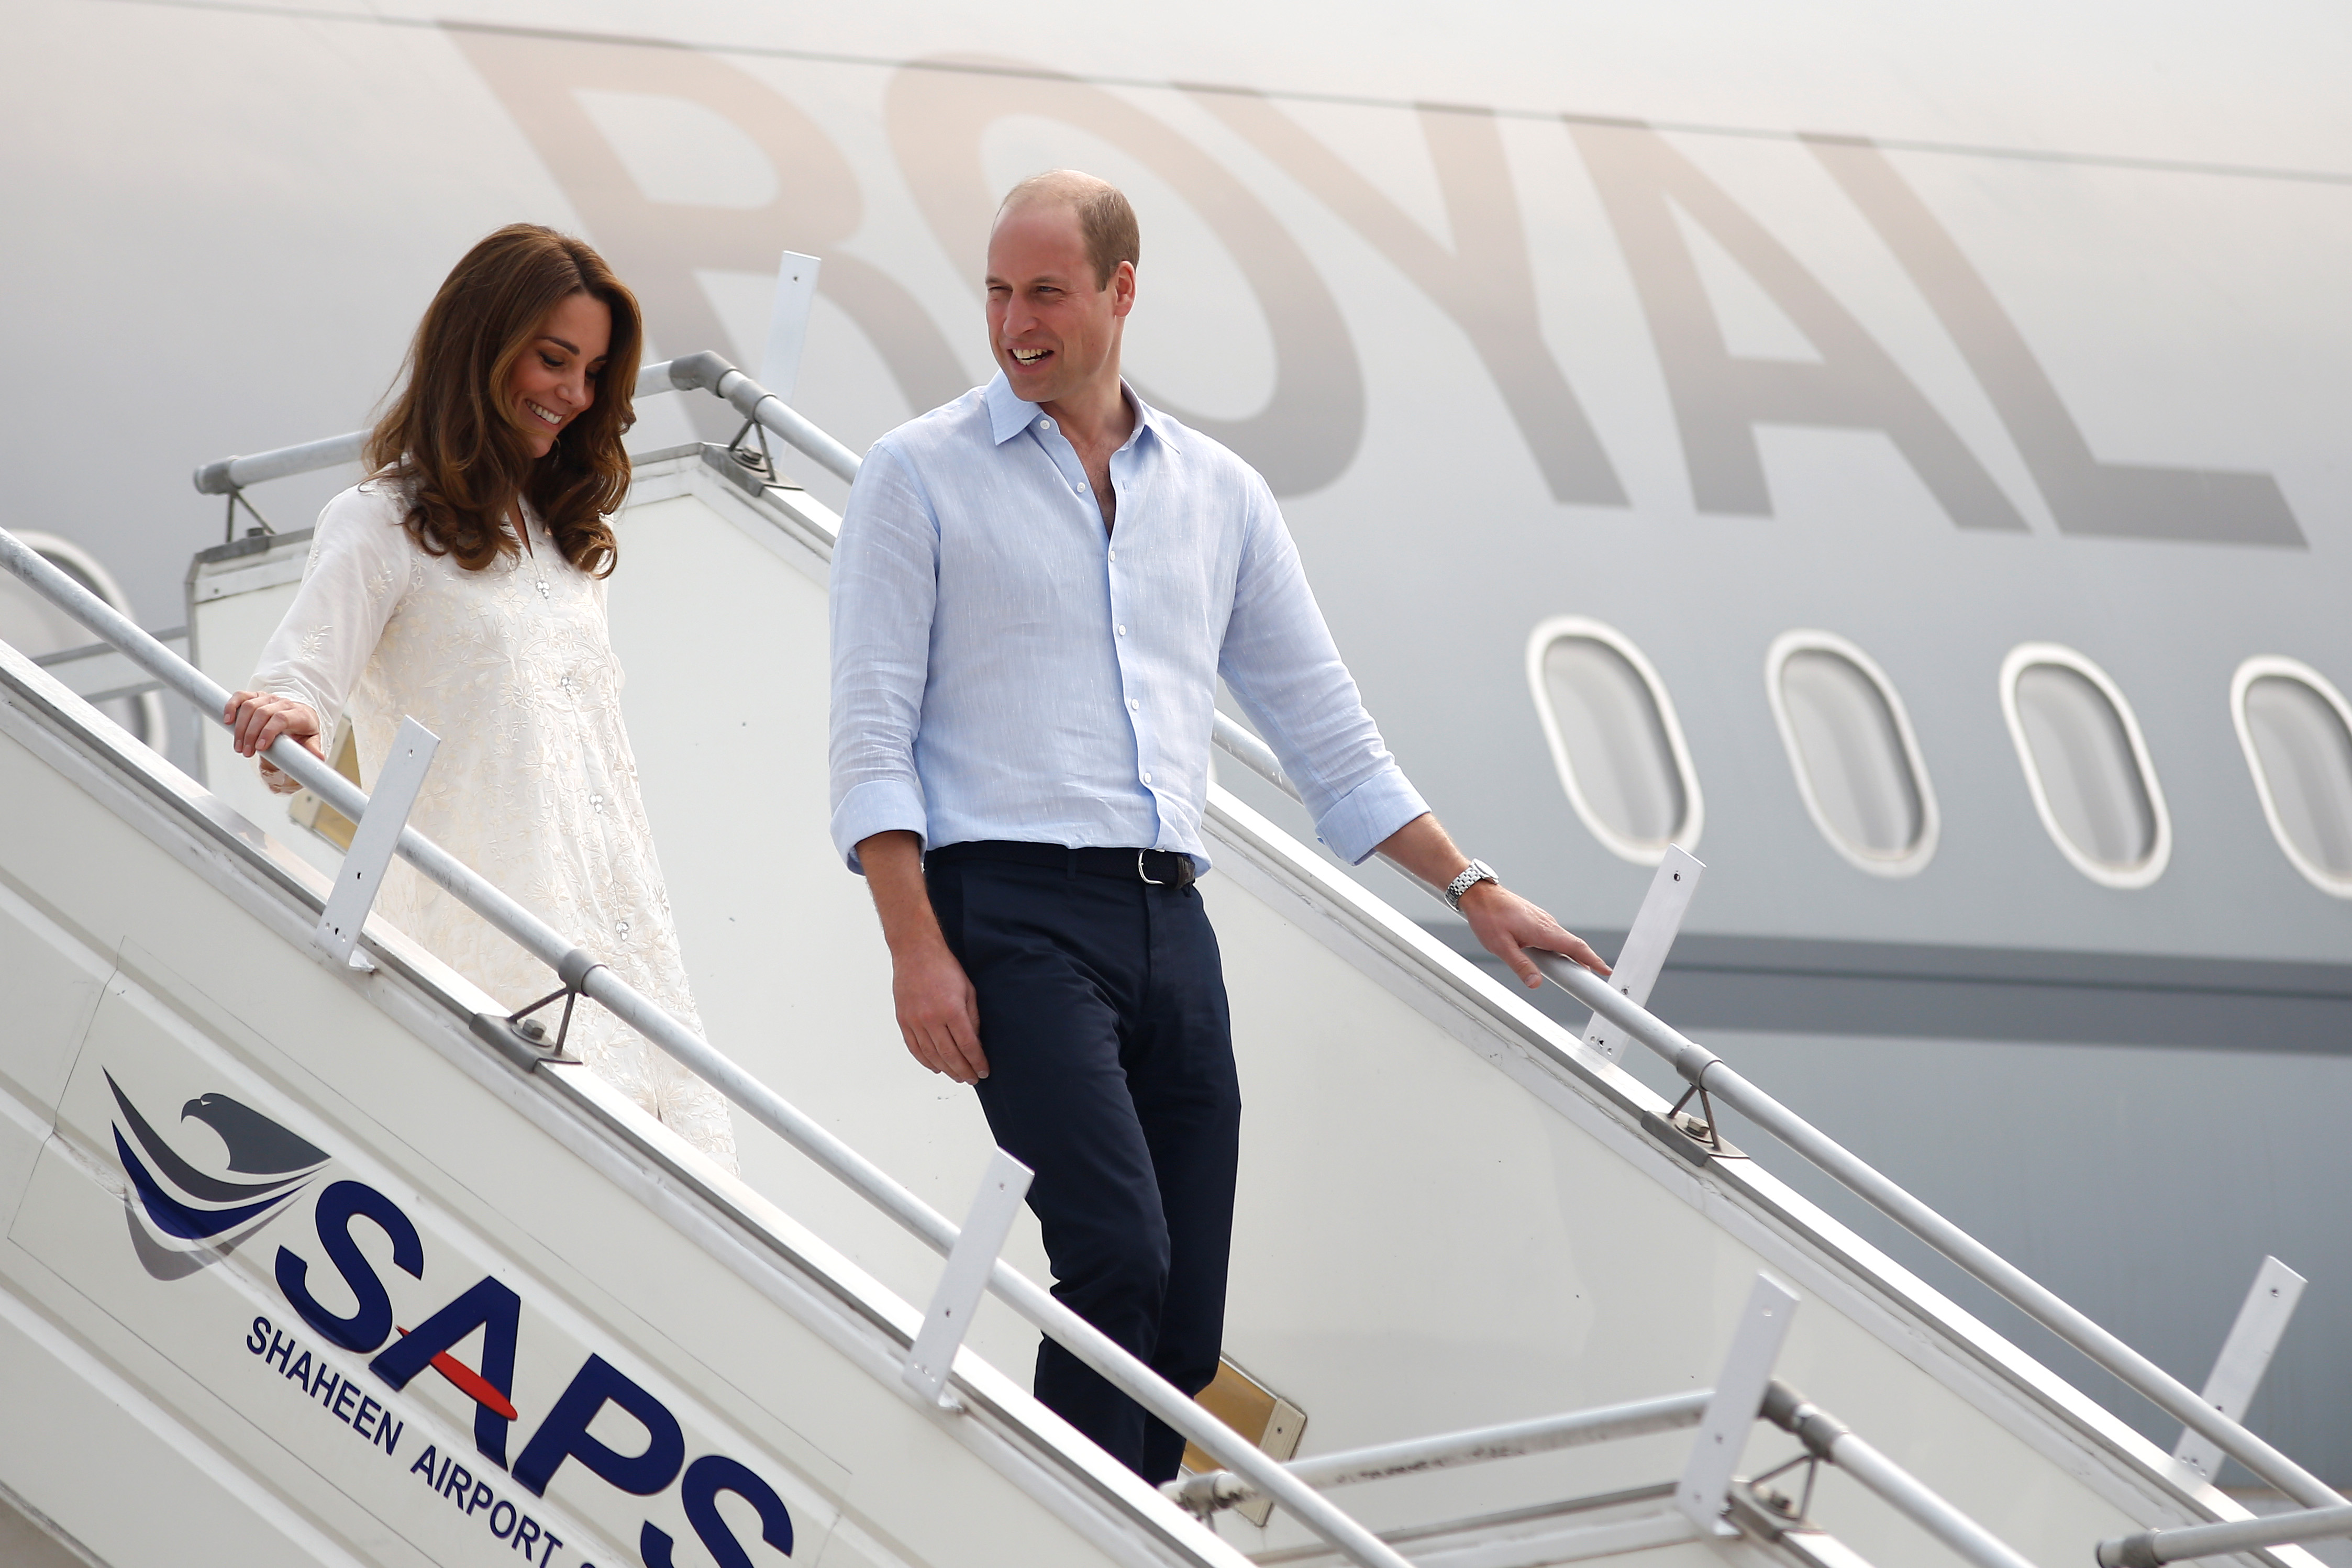 Kate Middleton explains how Prince William has impressed her on tour